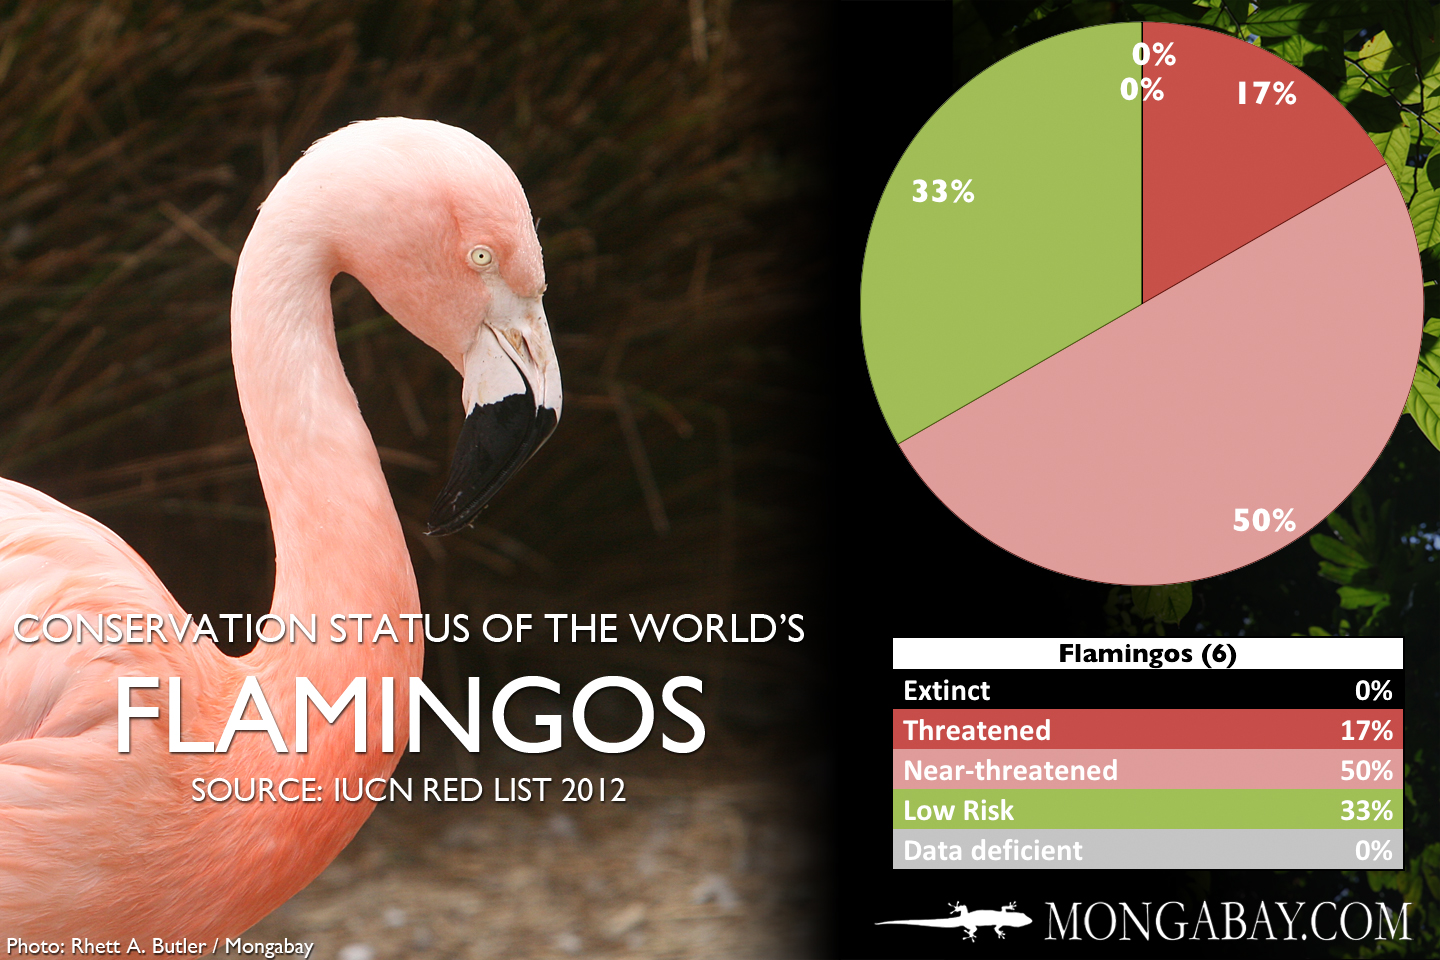 Flamingos live on the coast of africa and aisa